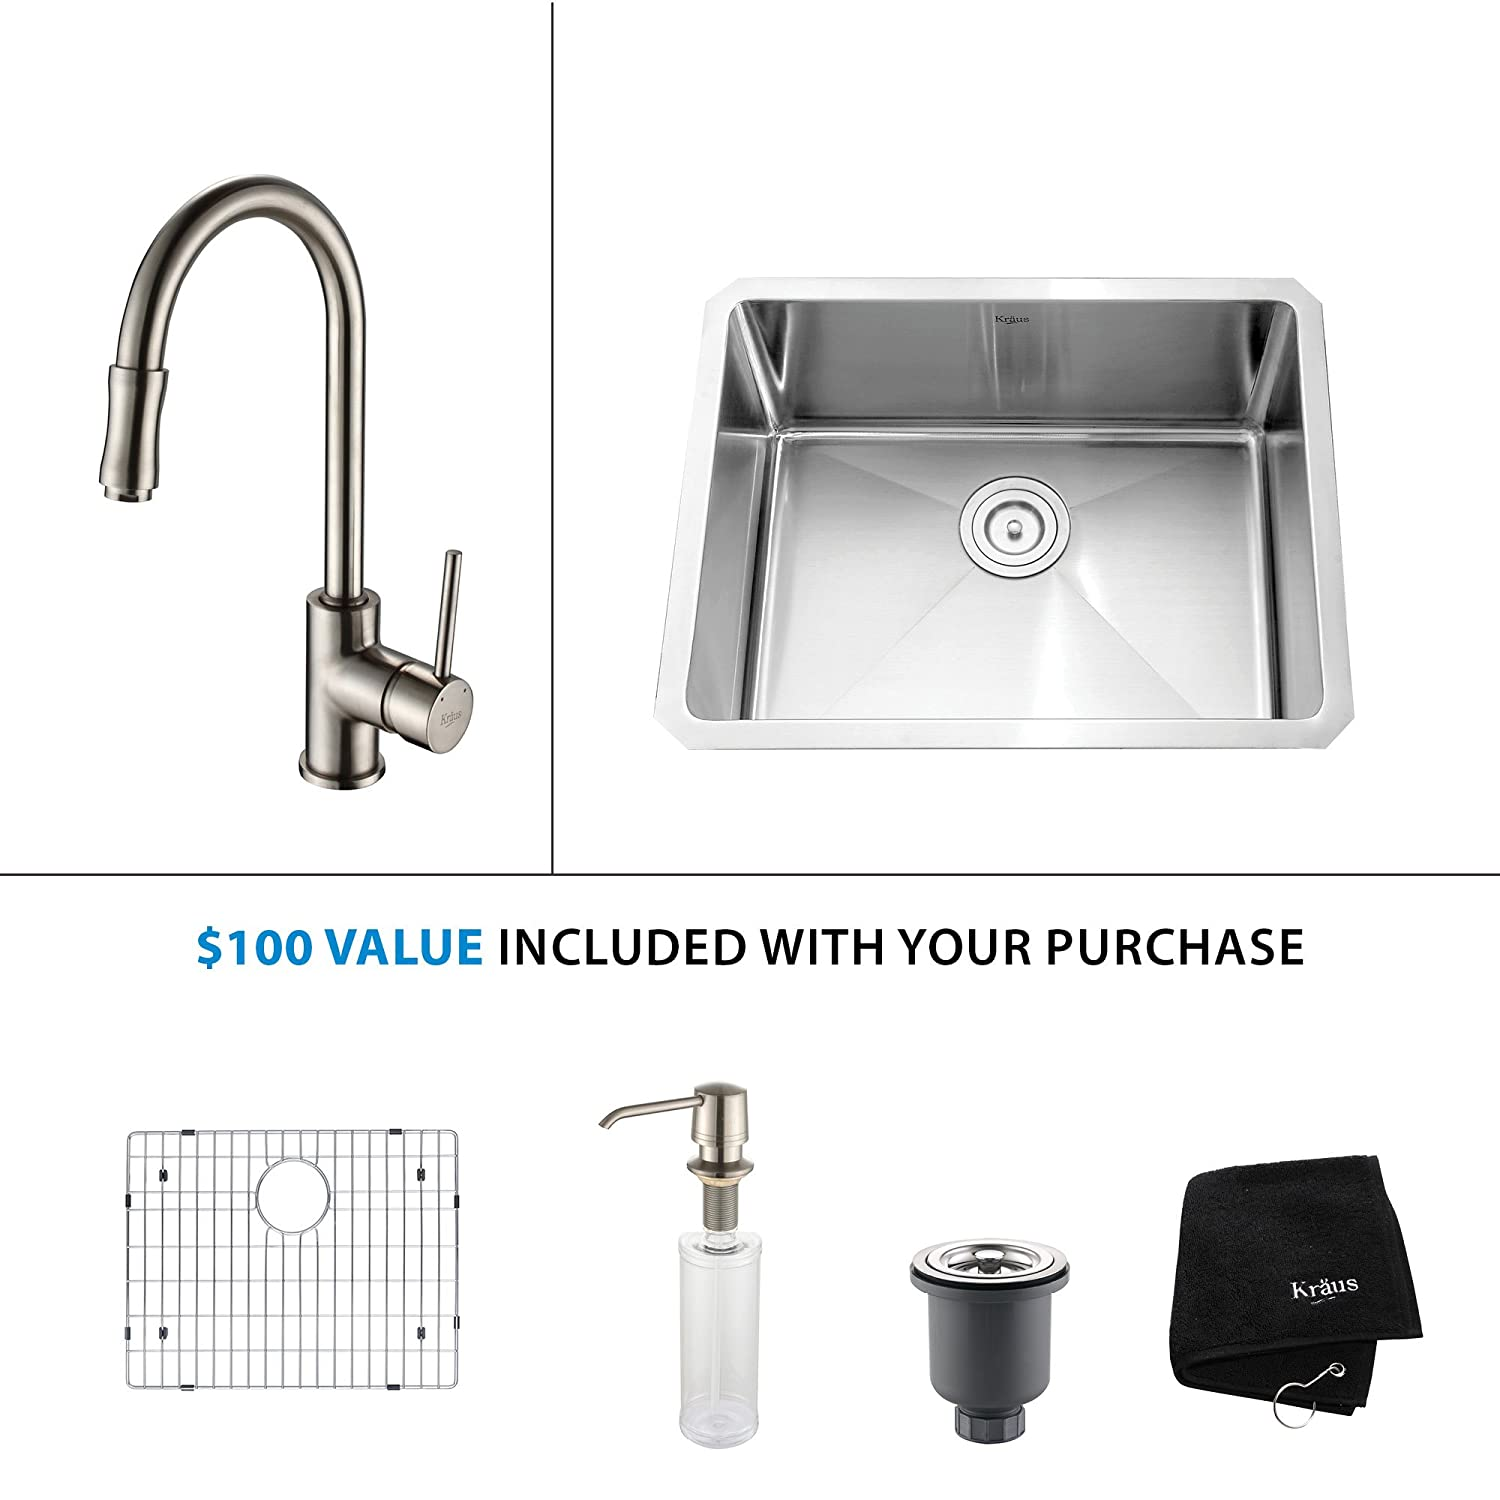 Kraus KHU101-23-KPF1622-KSD30SN 23 inch Undermount Single Bowl Stainless Steel Kitchen Sink with Satin Nickel Kitchen Faucet and Soap Dispenser